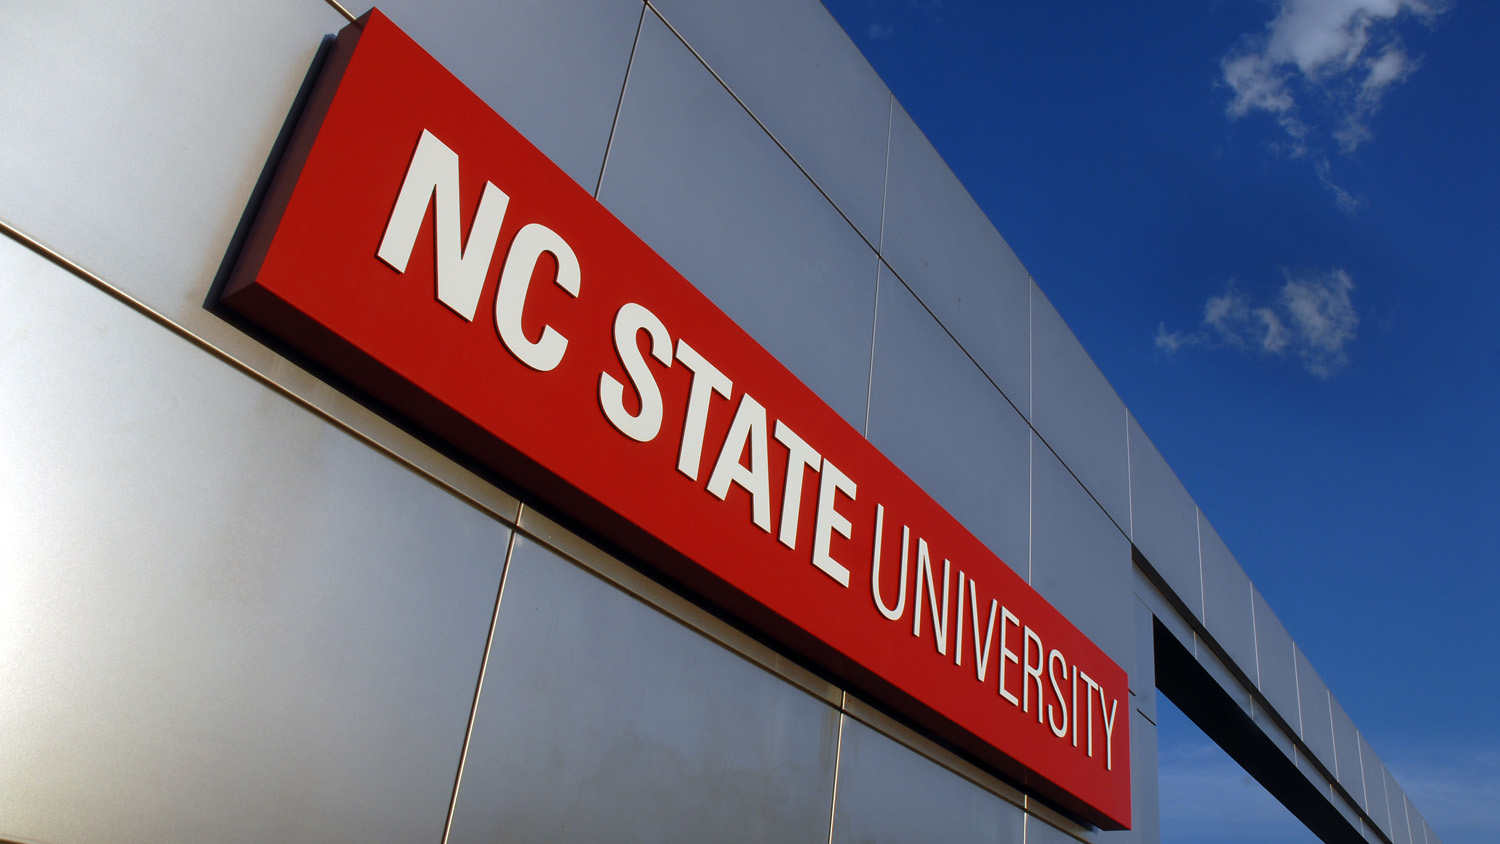 NC State University sign